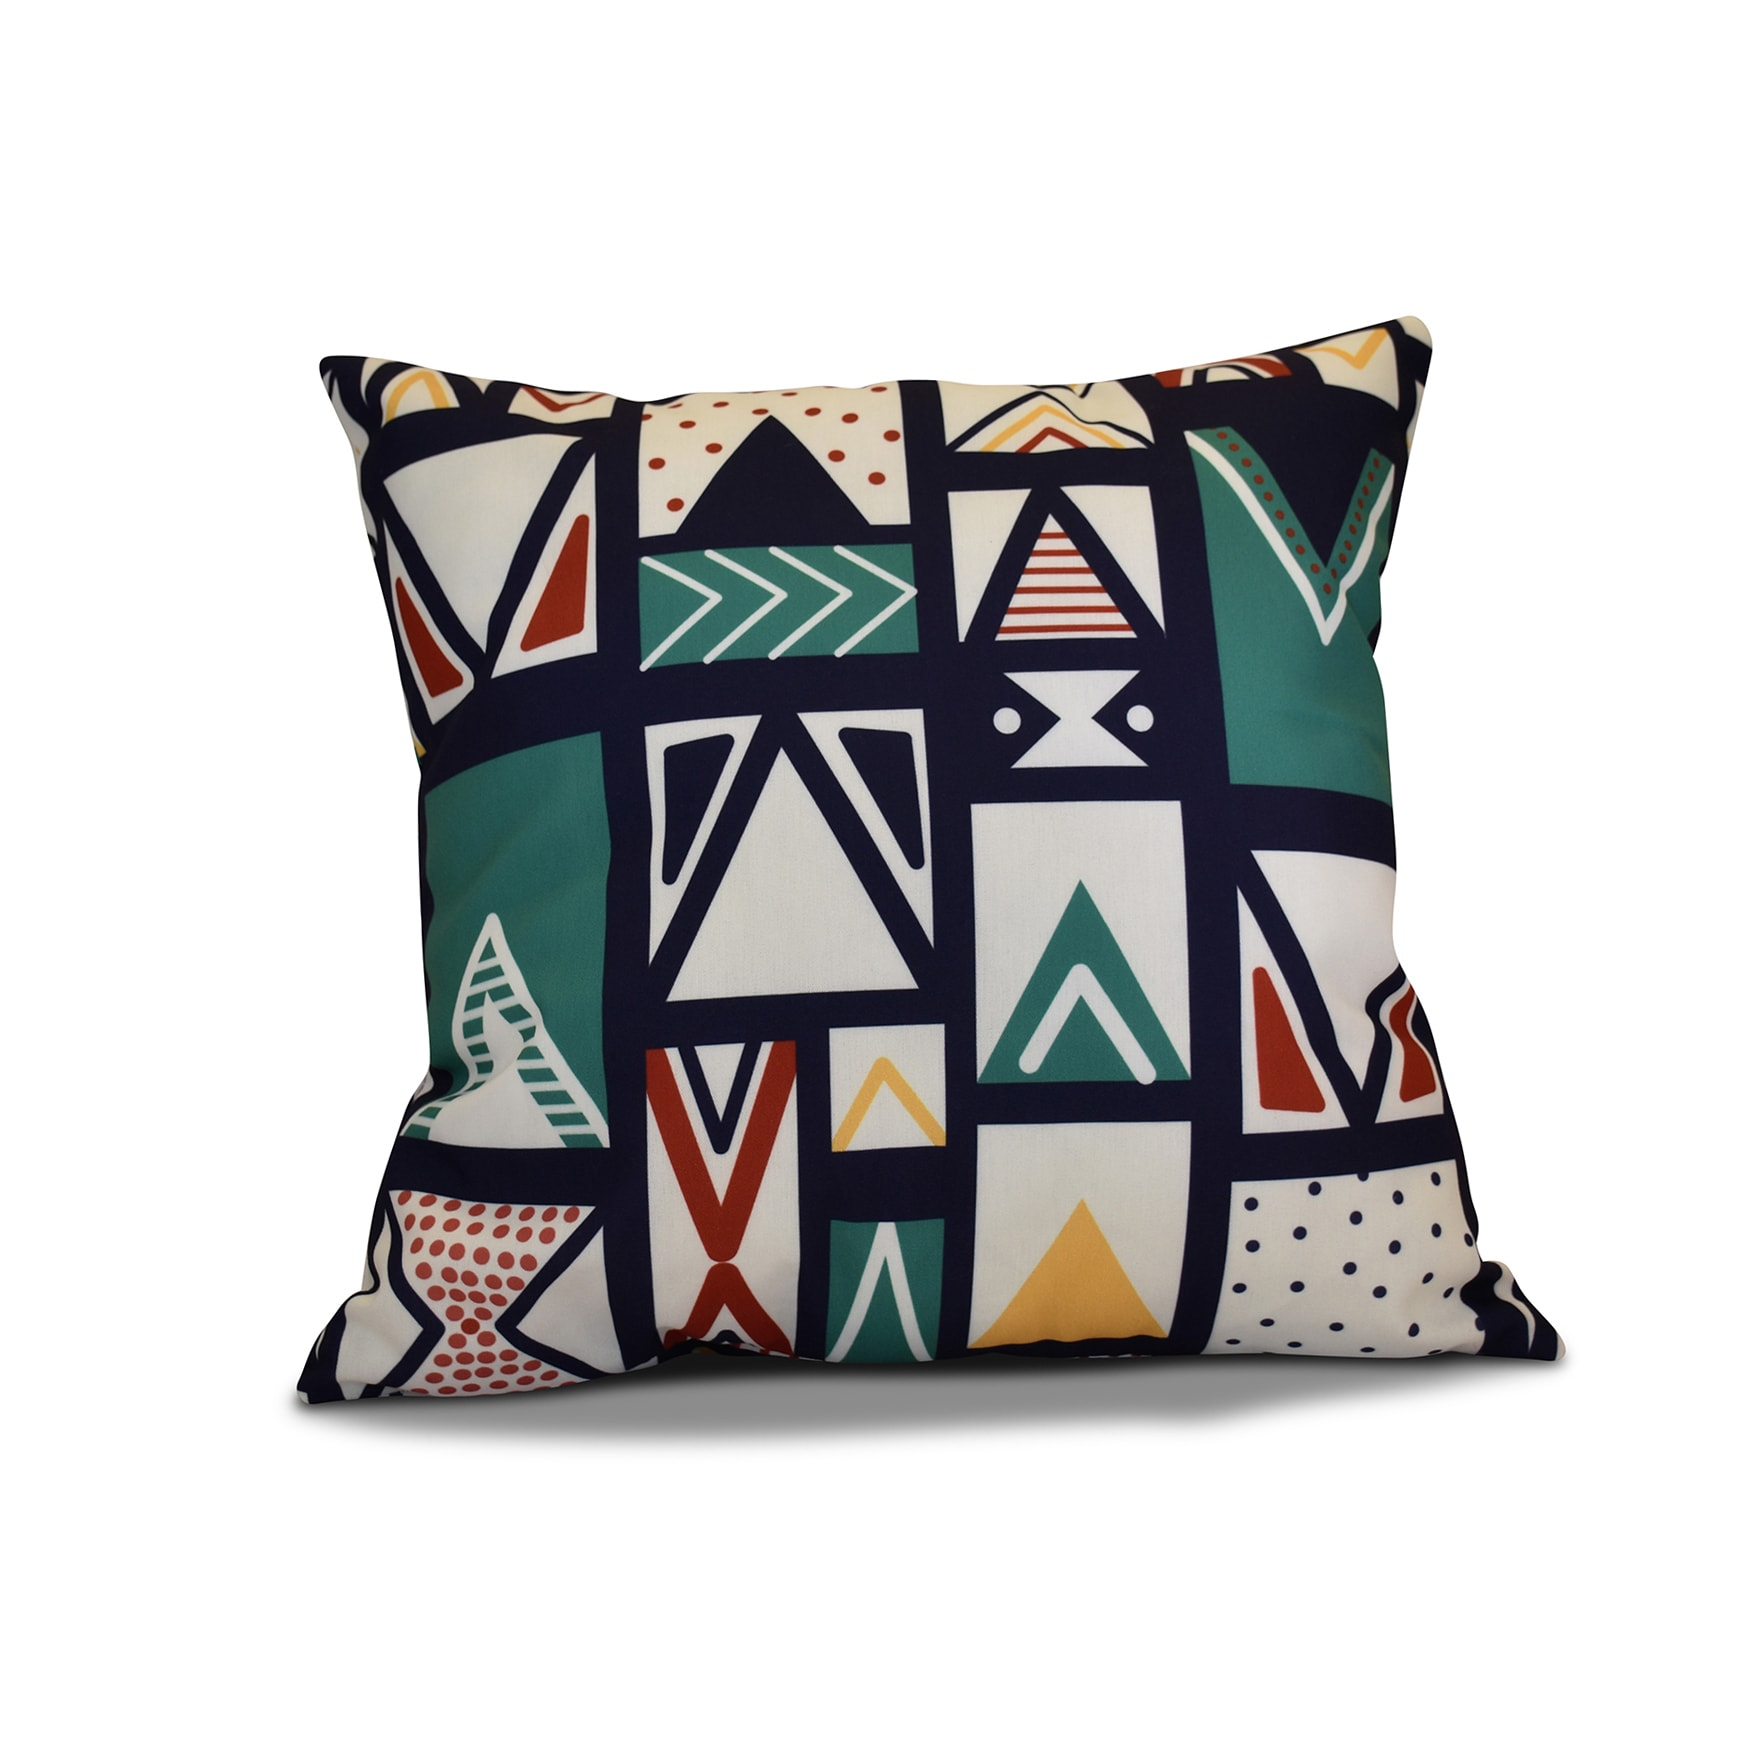 18 x 18-inch, Merry Susan, Geometric Holiday Print Outdoor Pillow (Navy Blue)